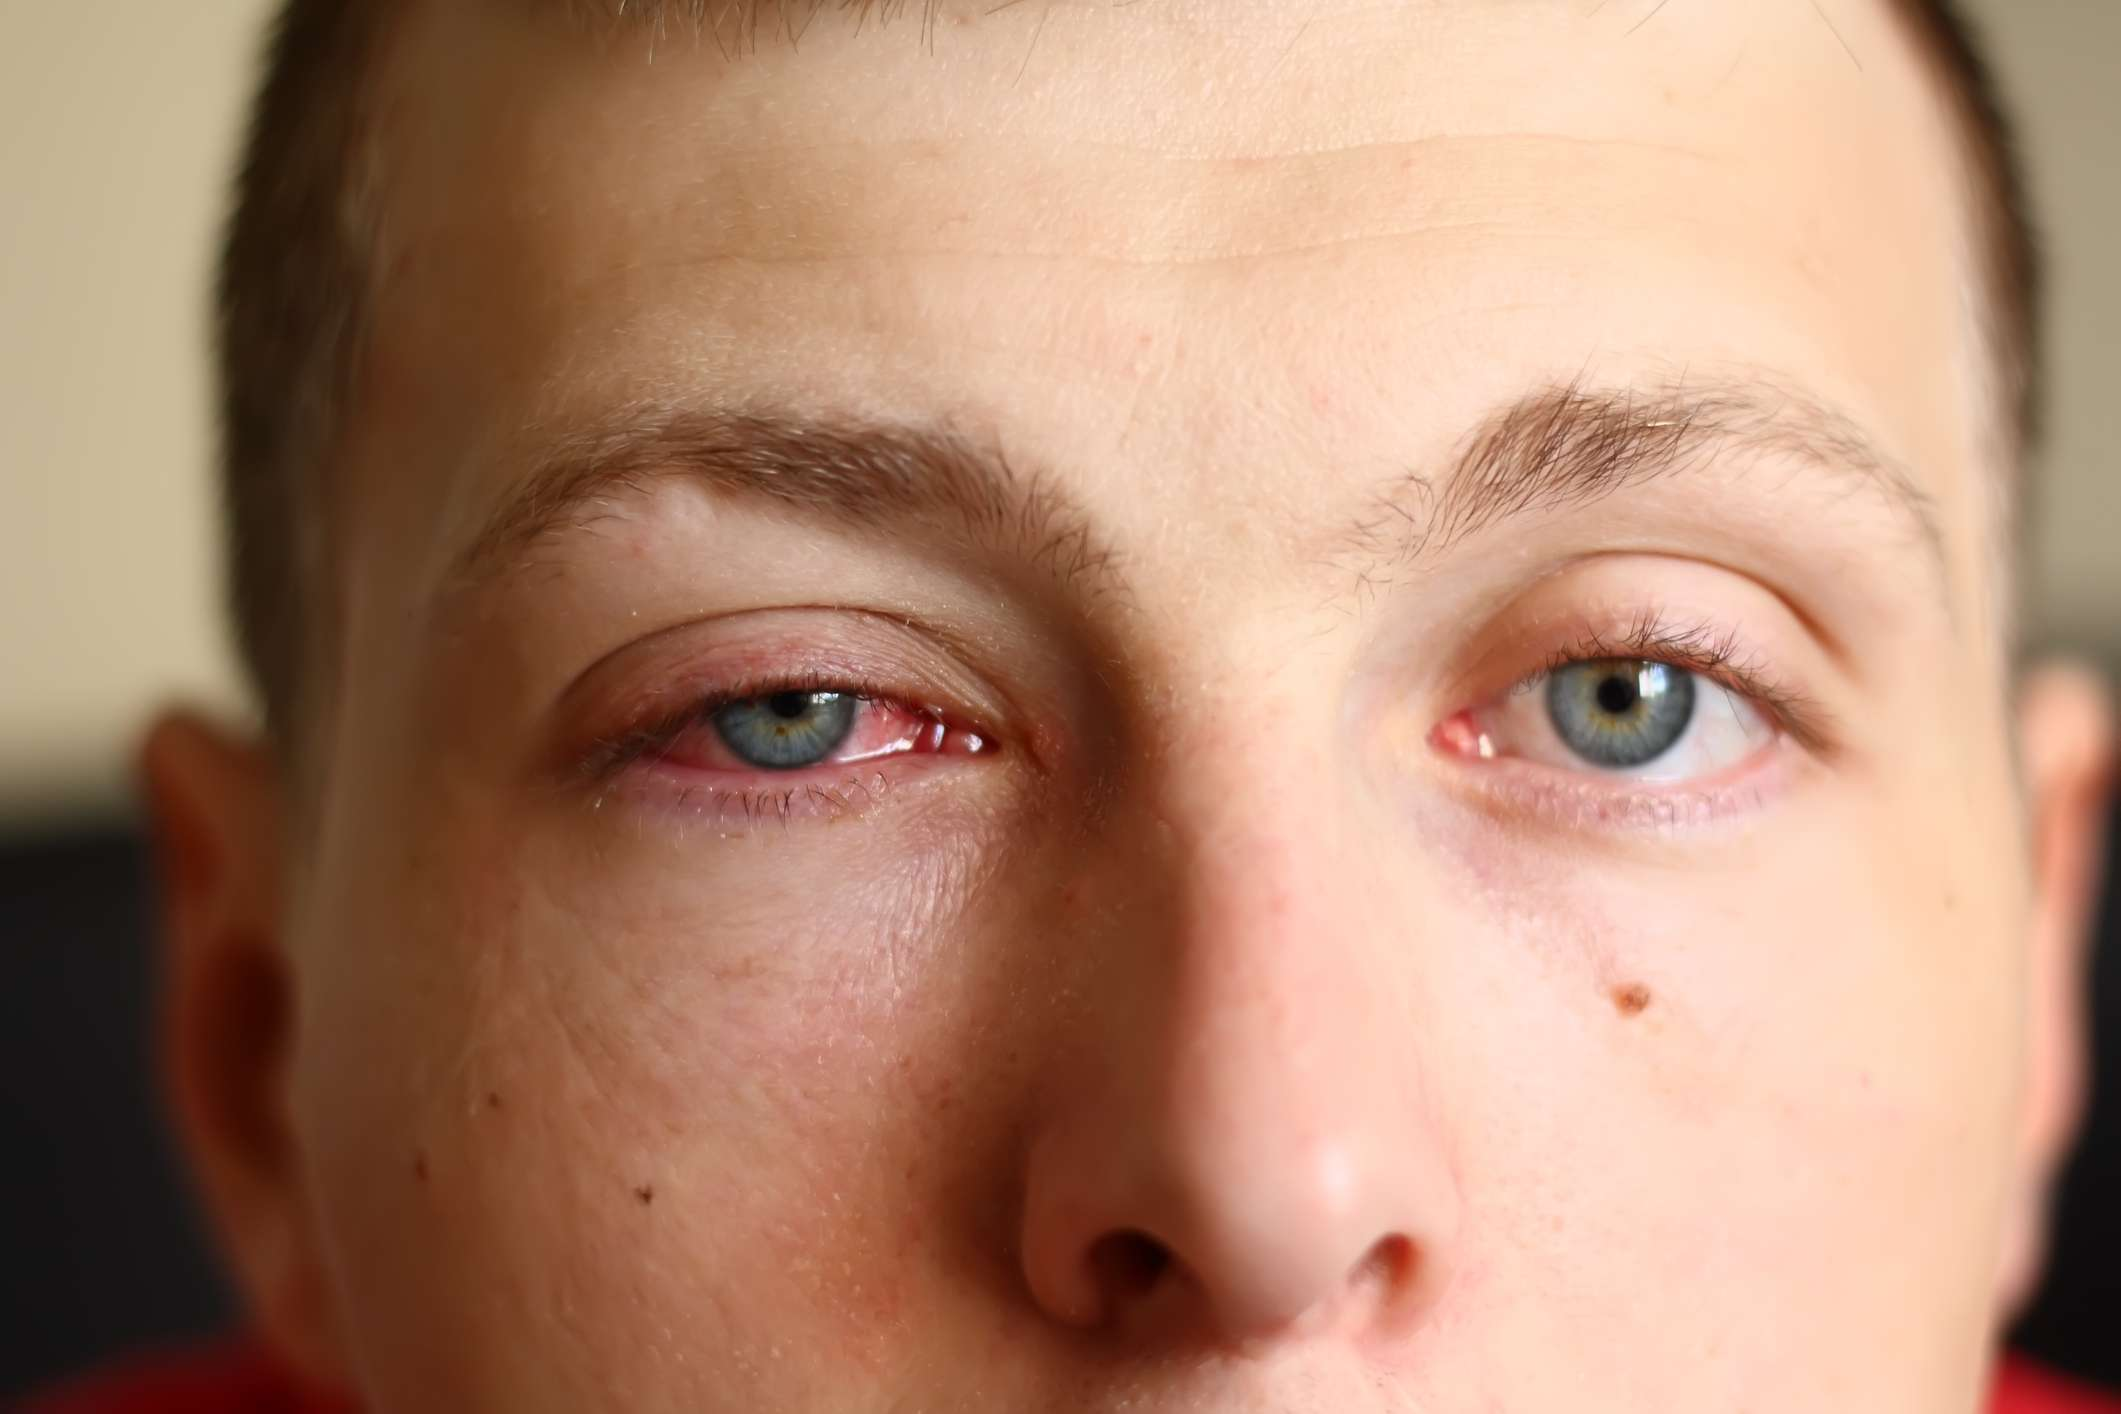 Man with a pink eye.